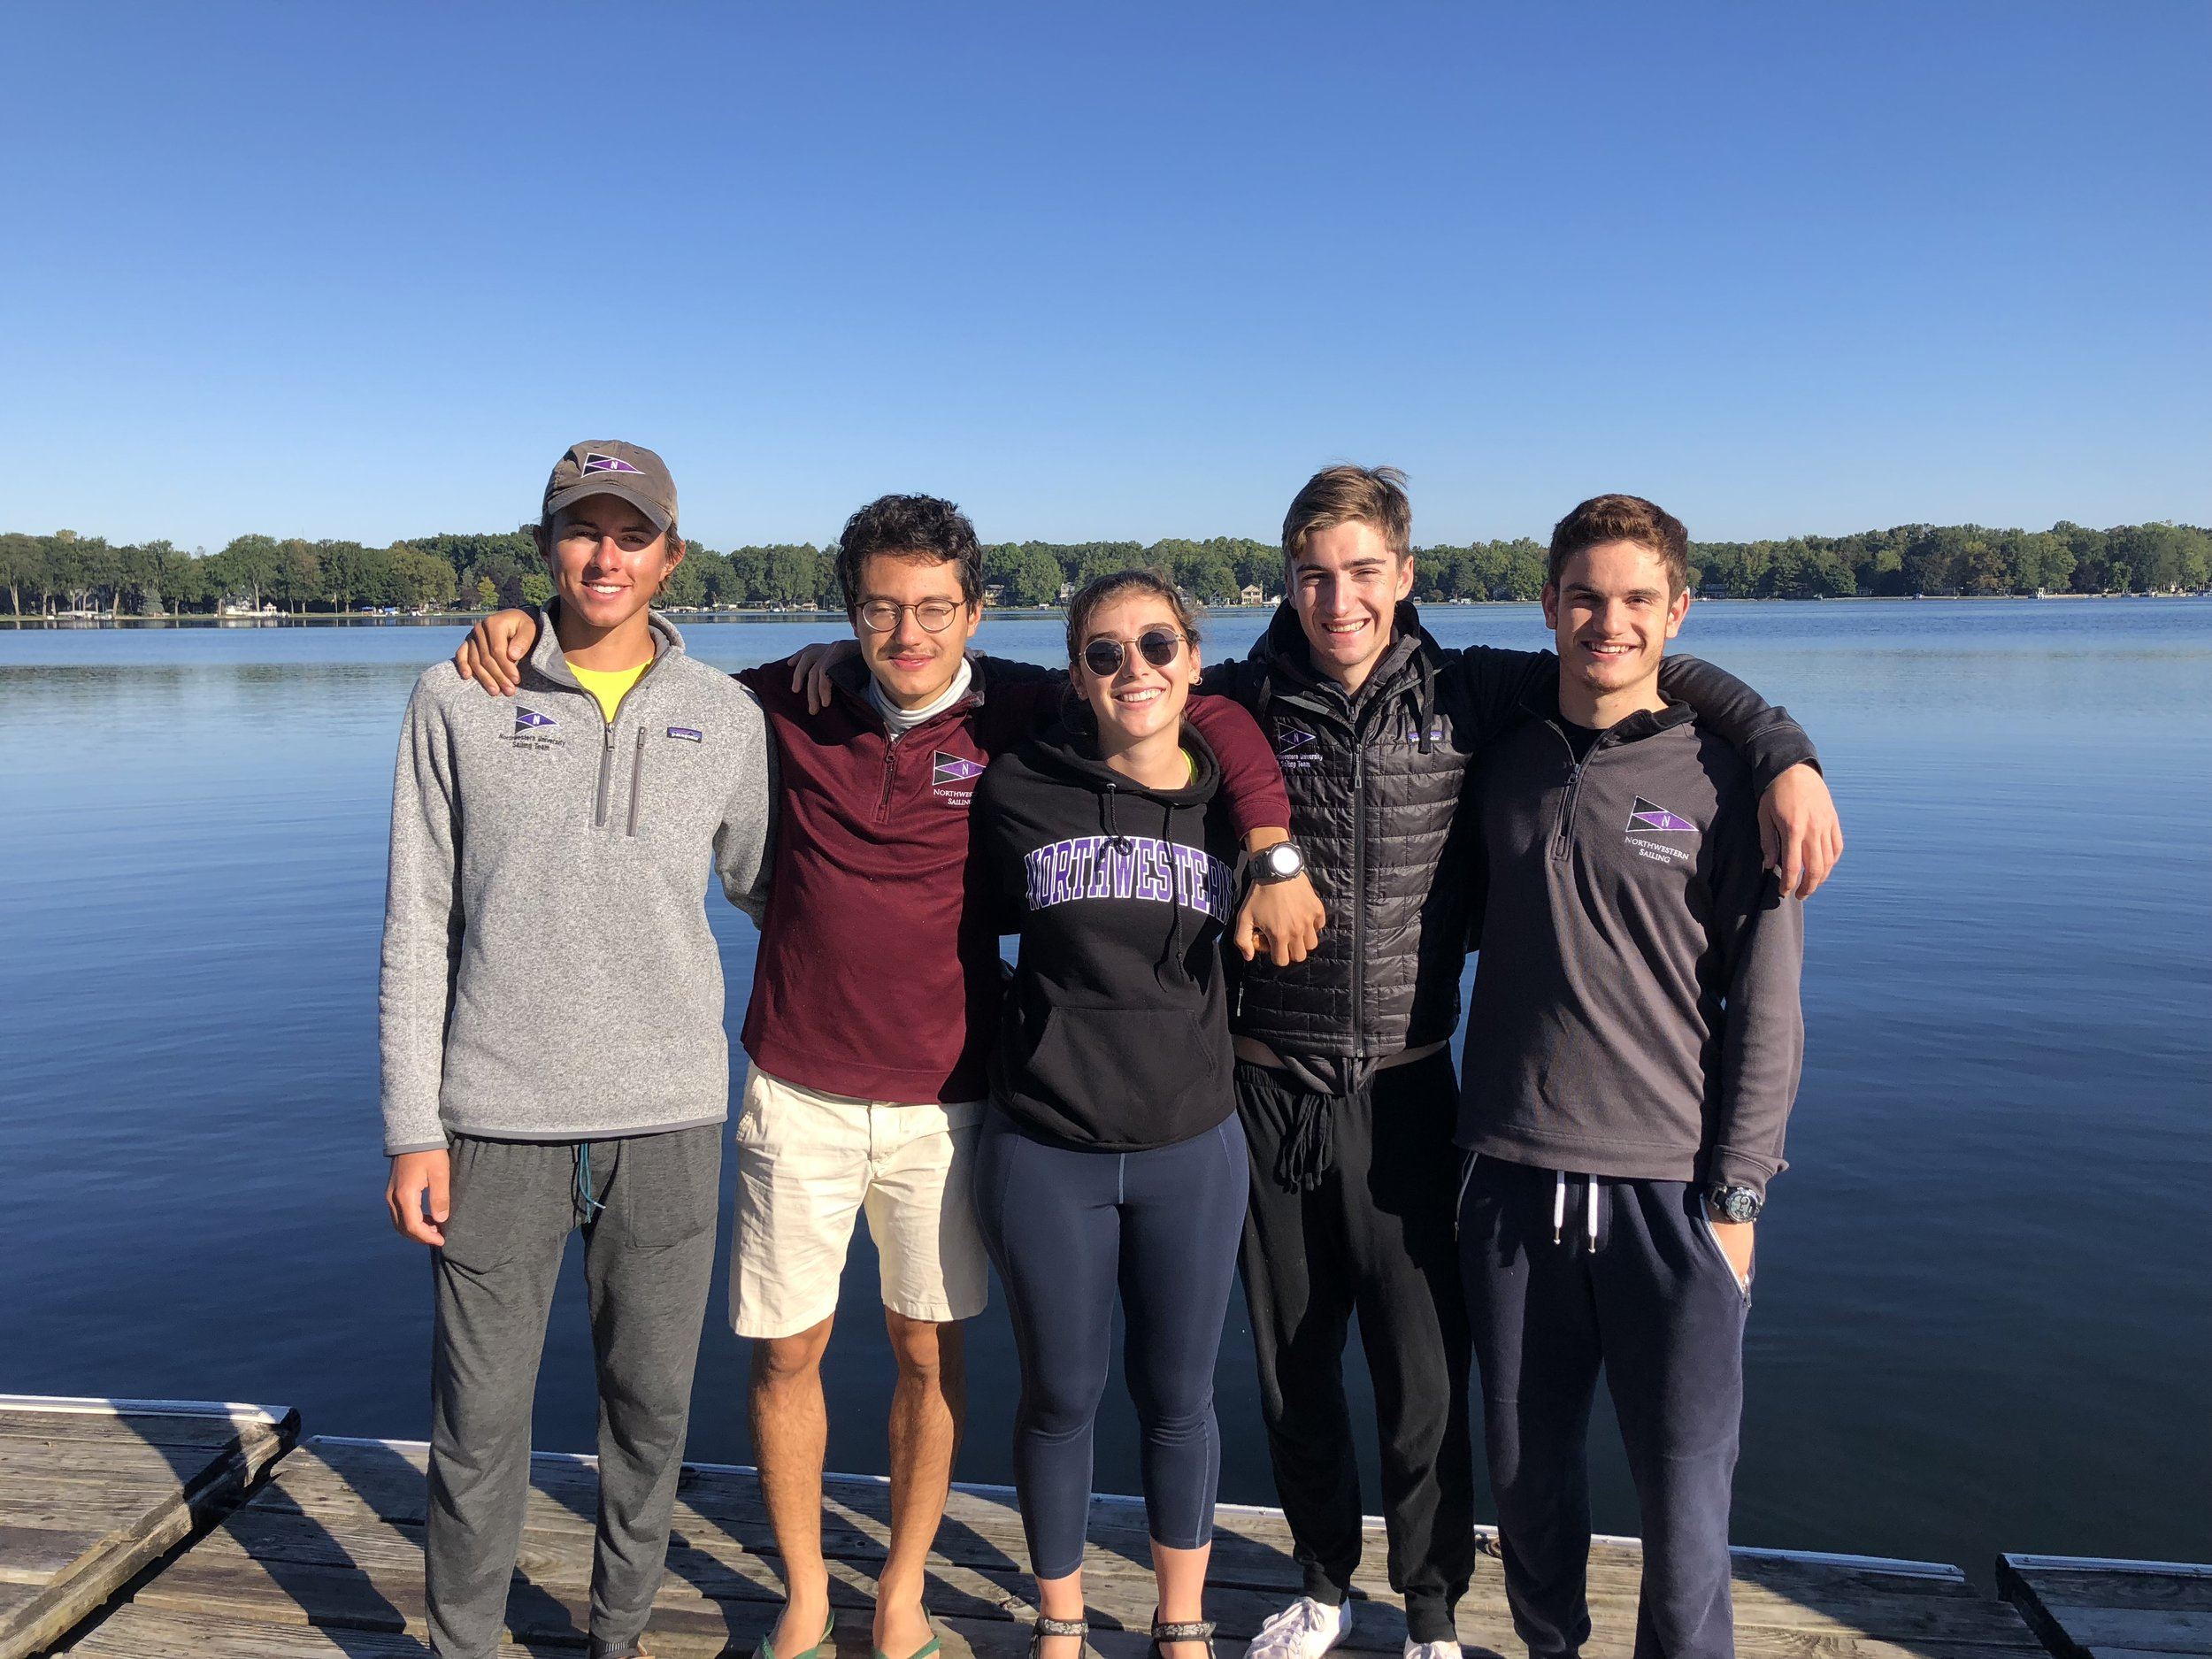 9/22 - 9/23 Cary Price Memorial Regatta - NUST placed 3rd at this lovely weekend at the University of Michigan!